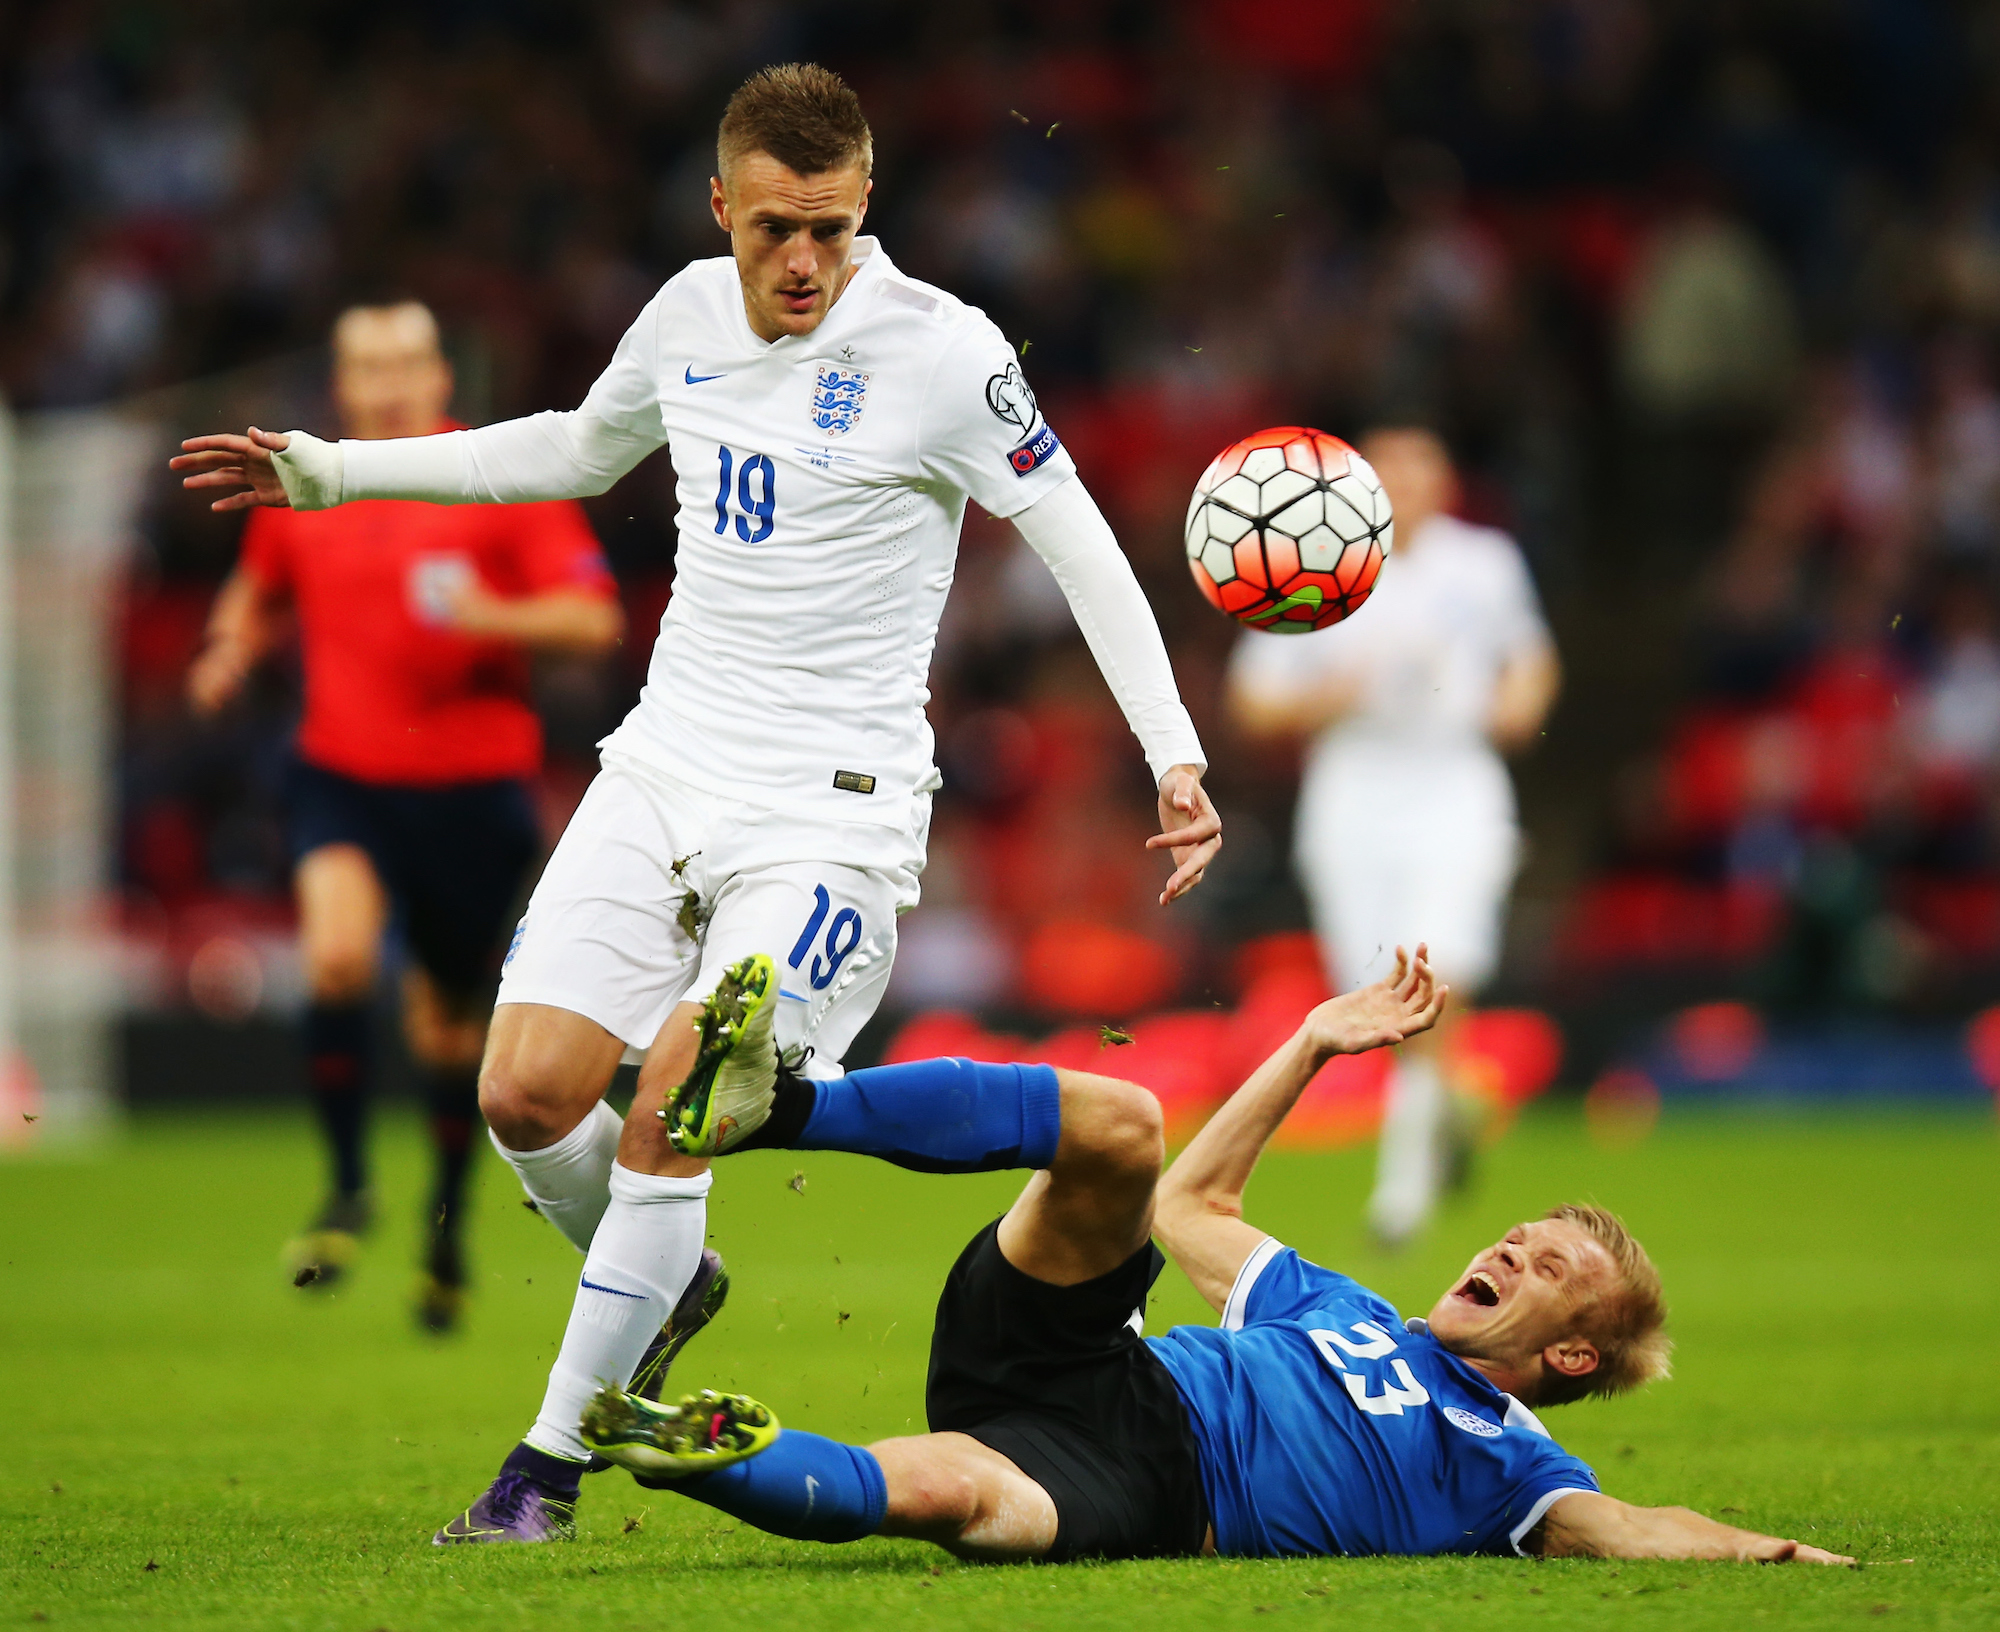 LONDON, ENGLAND - OCTOBER 09: Jamie Vardy of England battles with Taijo Teniste of Estonia during the UEFA EURO 2016 Group E qualifying match between England and Estonia at Wembley on October 9, 2015 in London, United Kingdom. (Photo by Bryn Lennon/Getty Images)